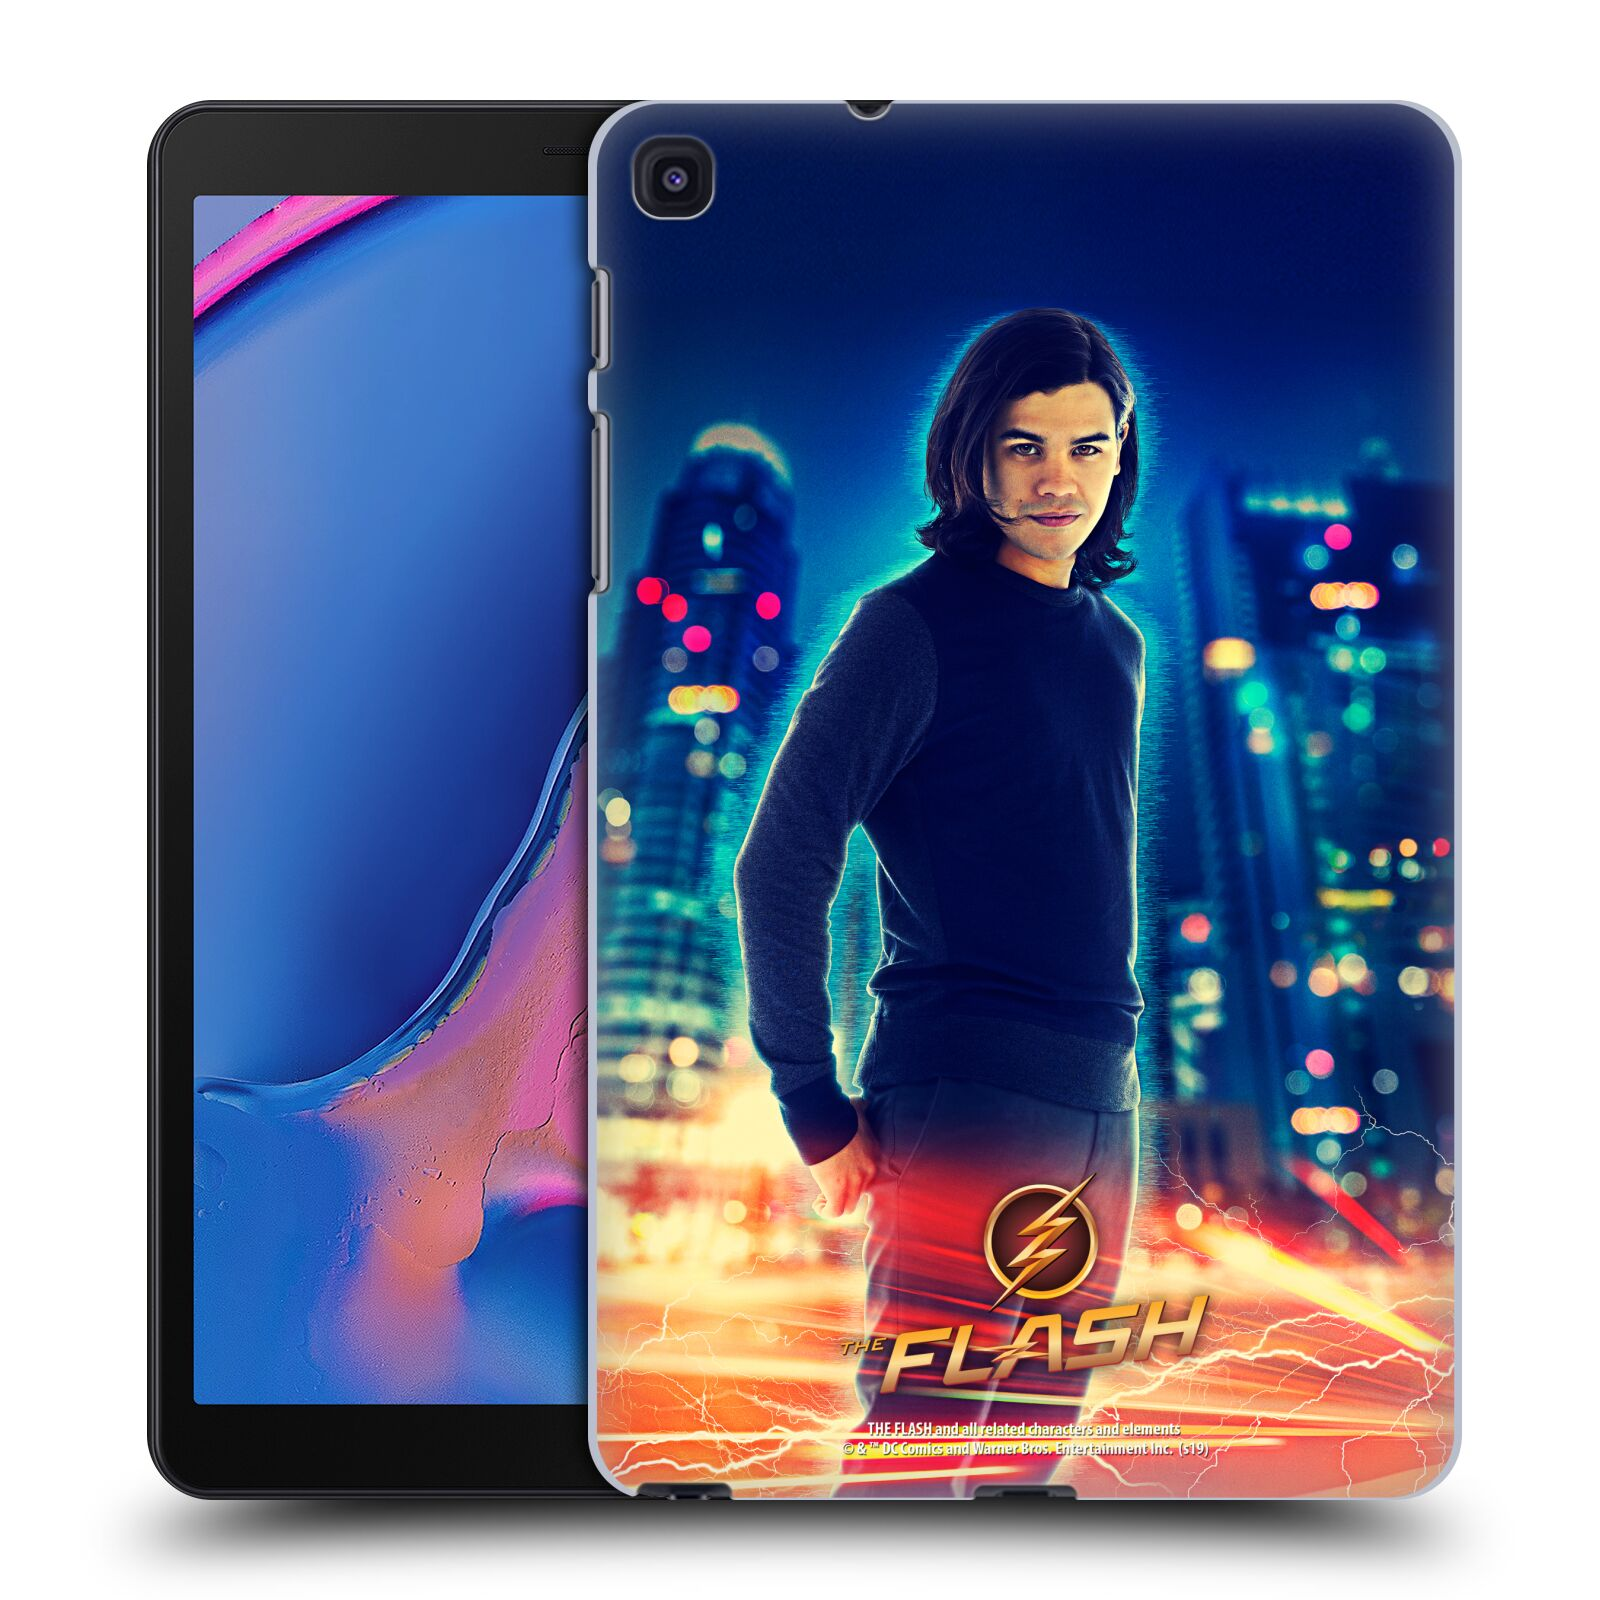 Official The Flash TV Series Character Art Cisco Ramon Case for Samsung Galaxy Tab A 8.0 & S Pen 2019